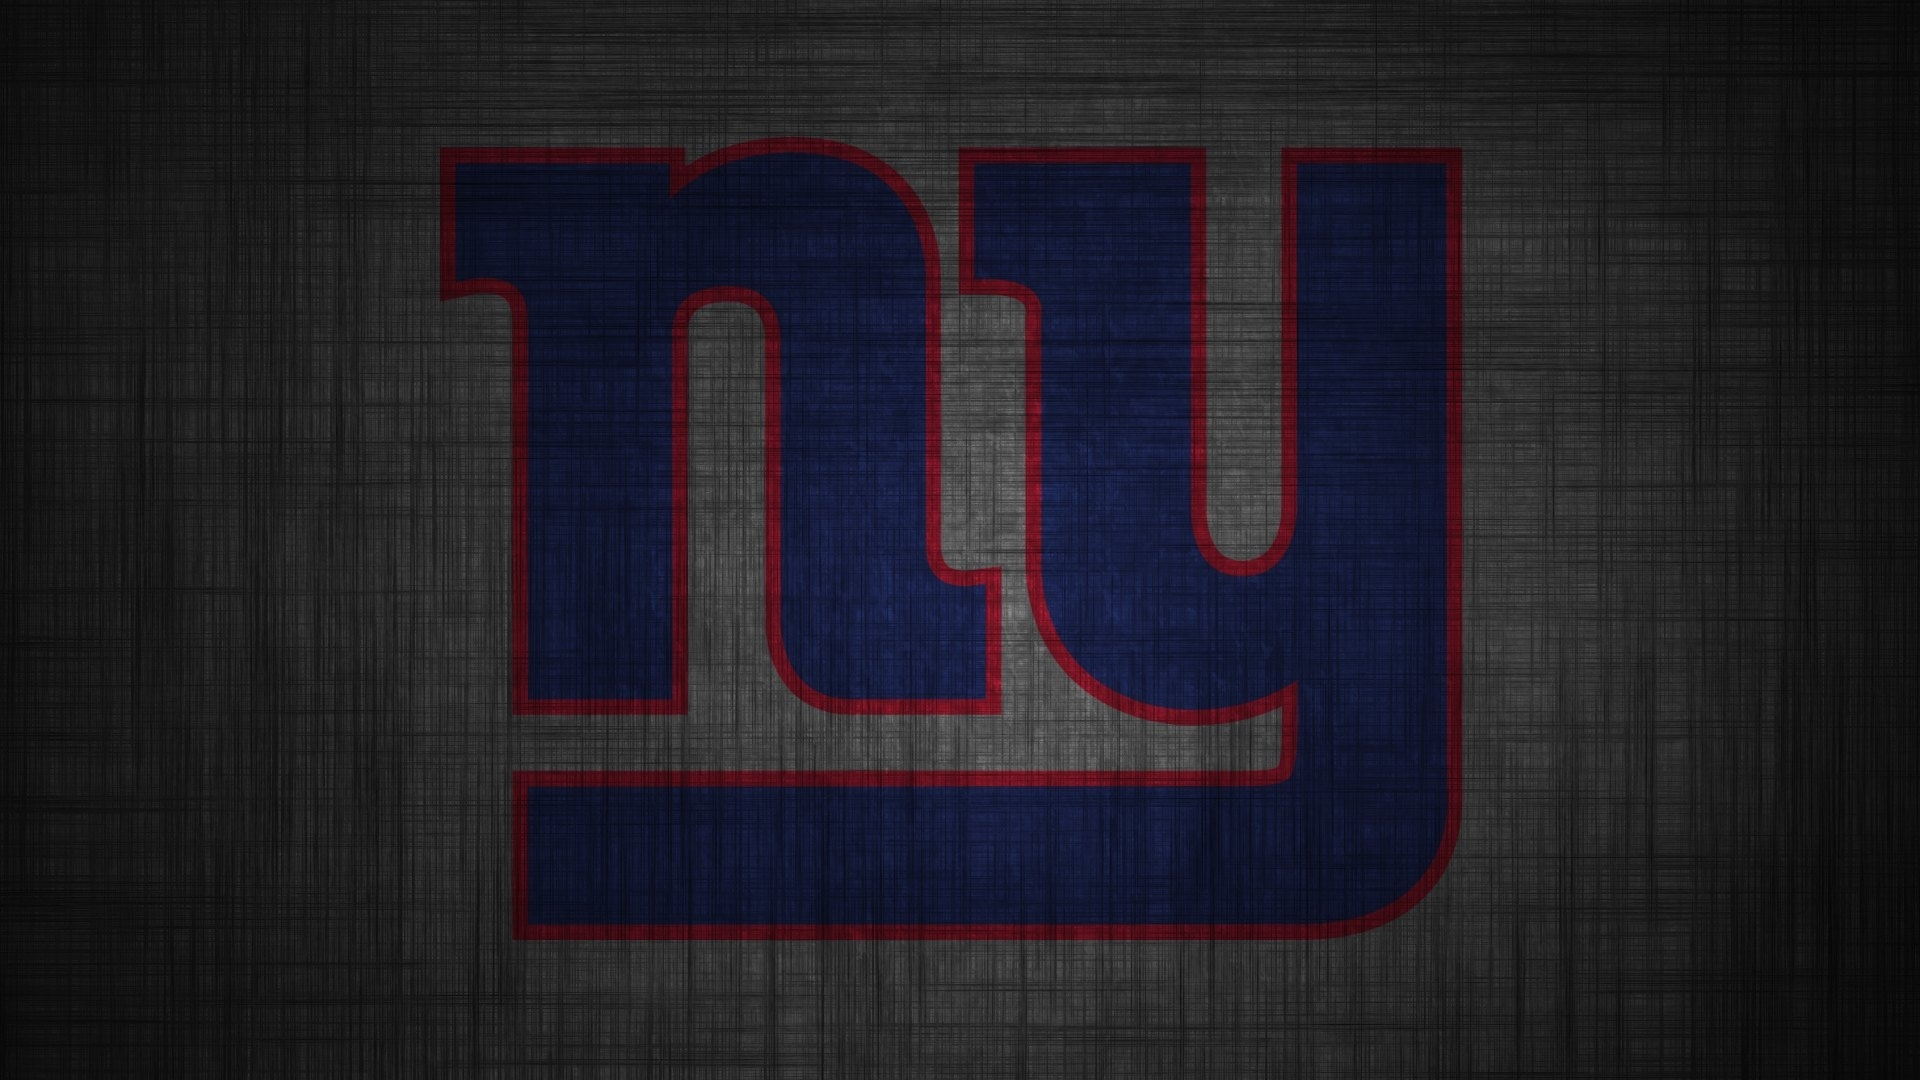 new york giants logo wallpaper 55990 1920x1080 px ~ hdwallsource